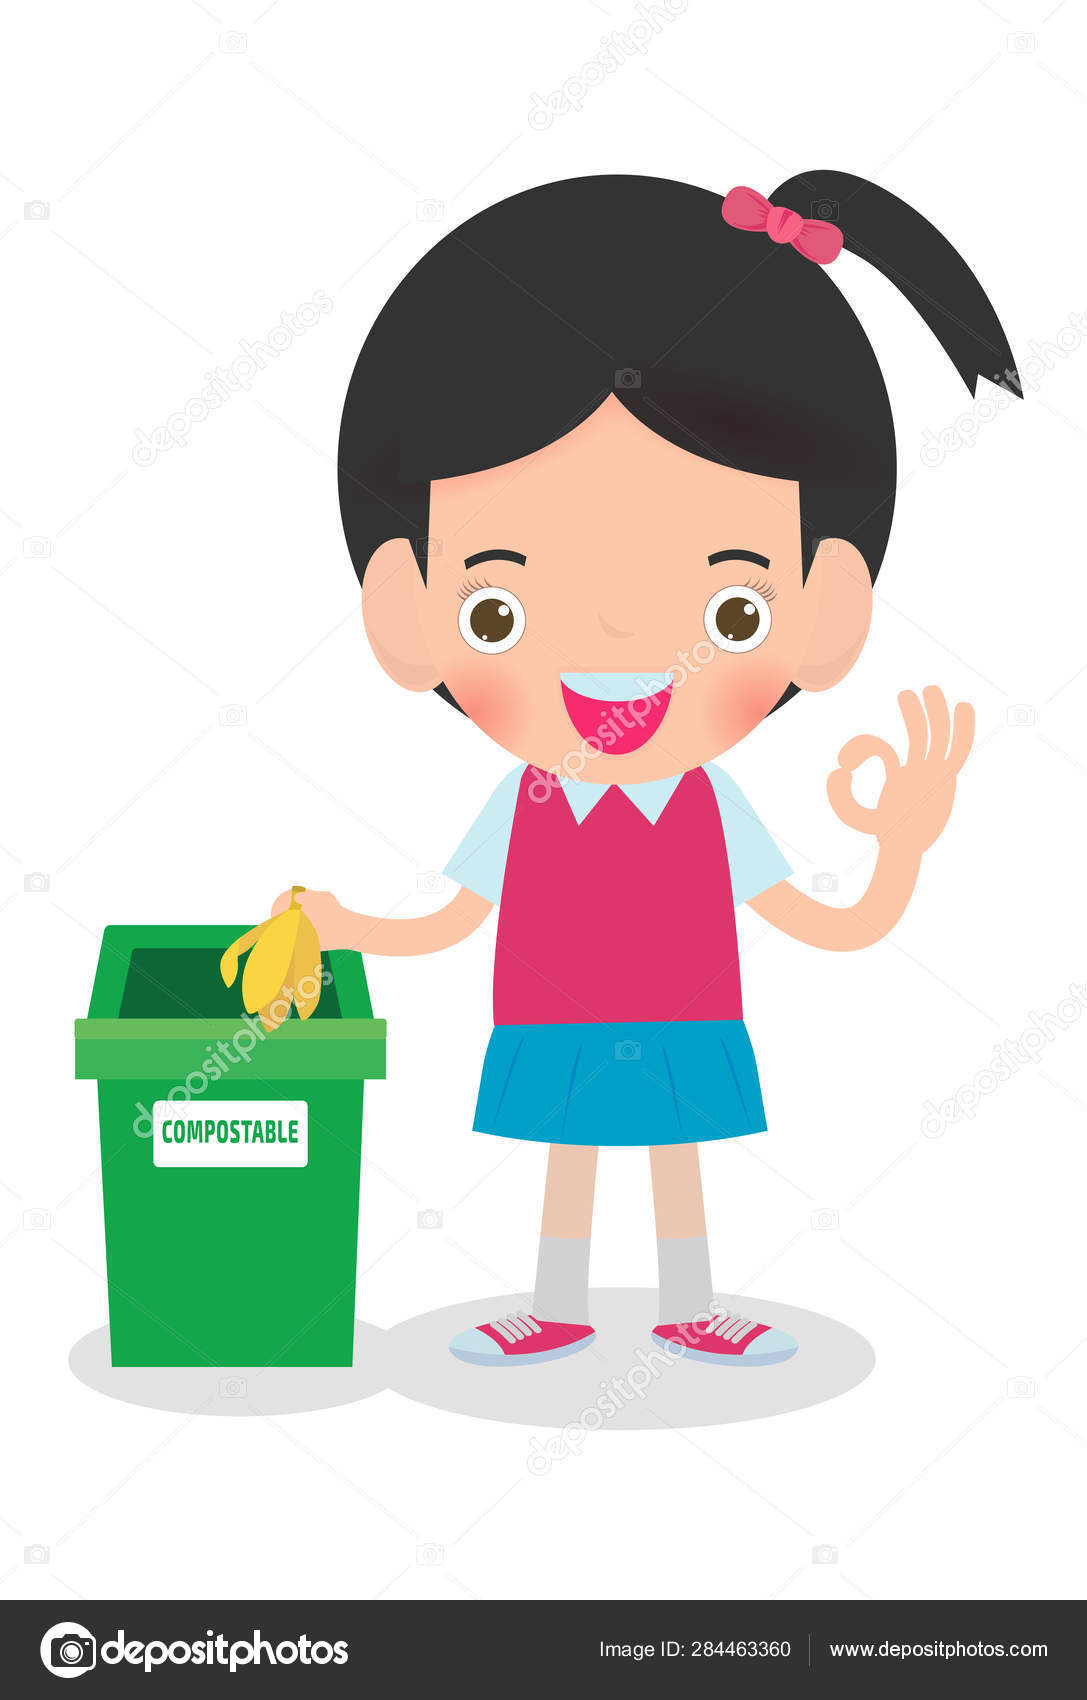 Cute Boy Holding Garbage Bag Royalty Free Cliparts, Vectors, And Stock  Illustration. Image 62040983.